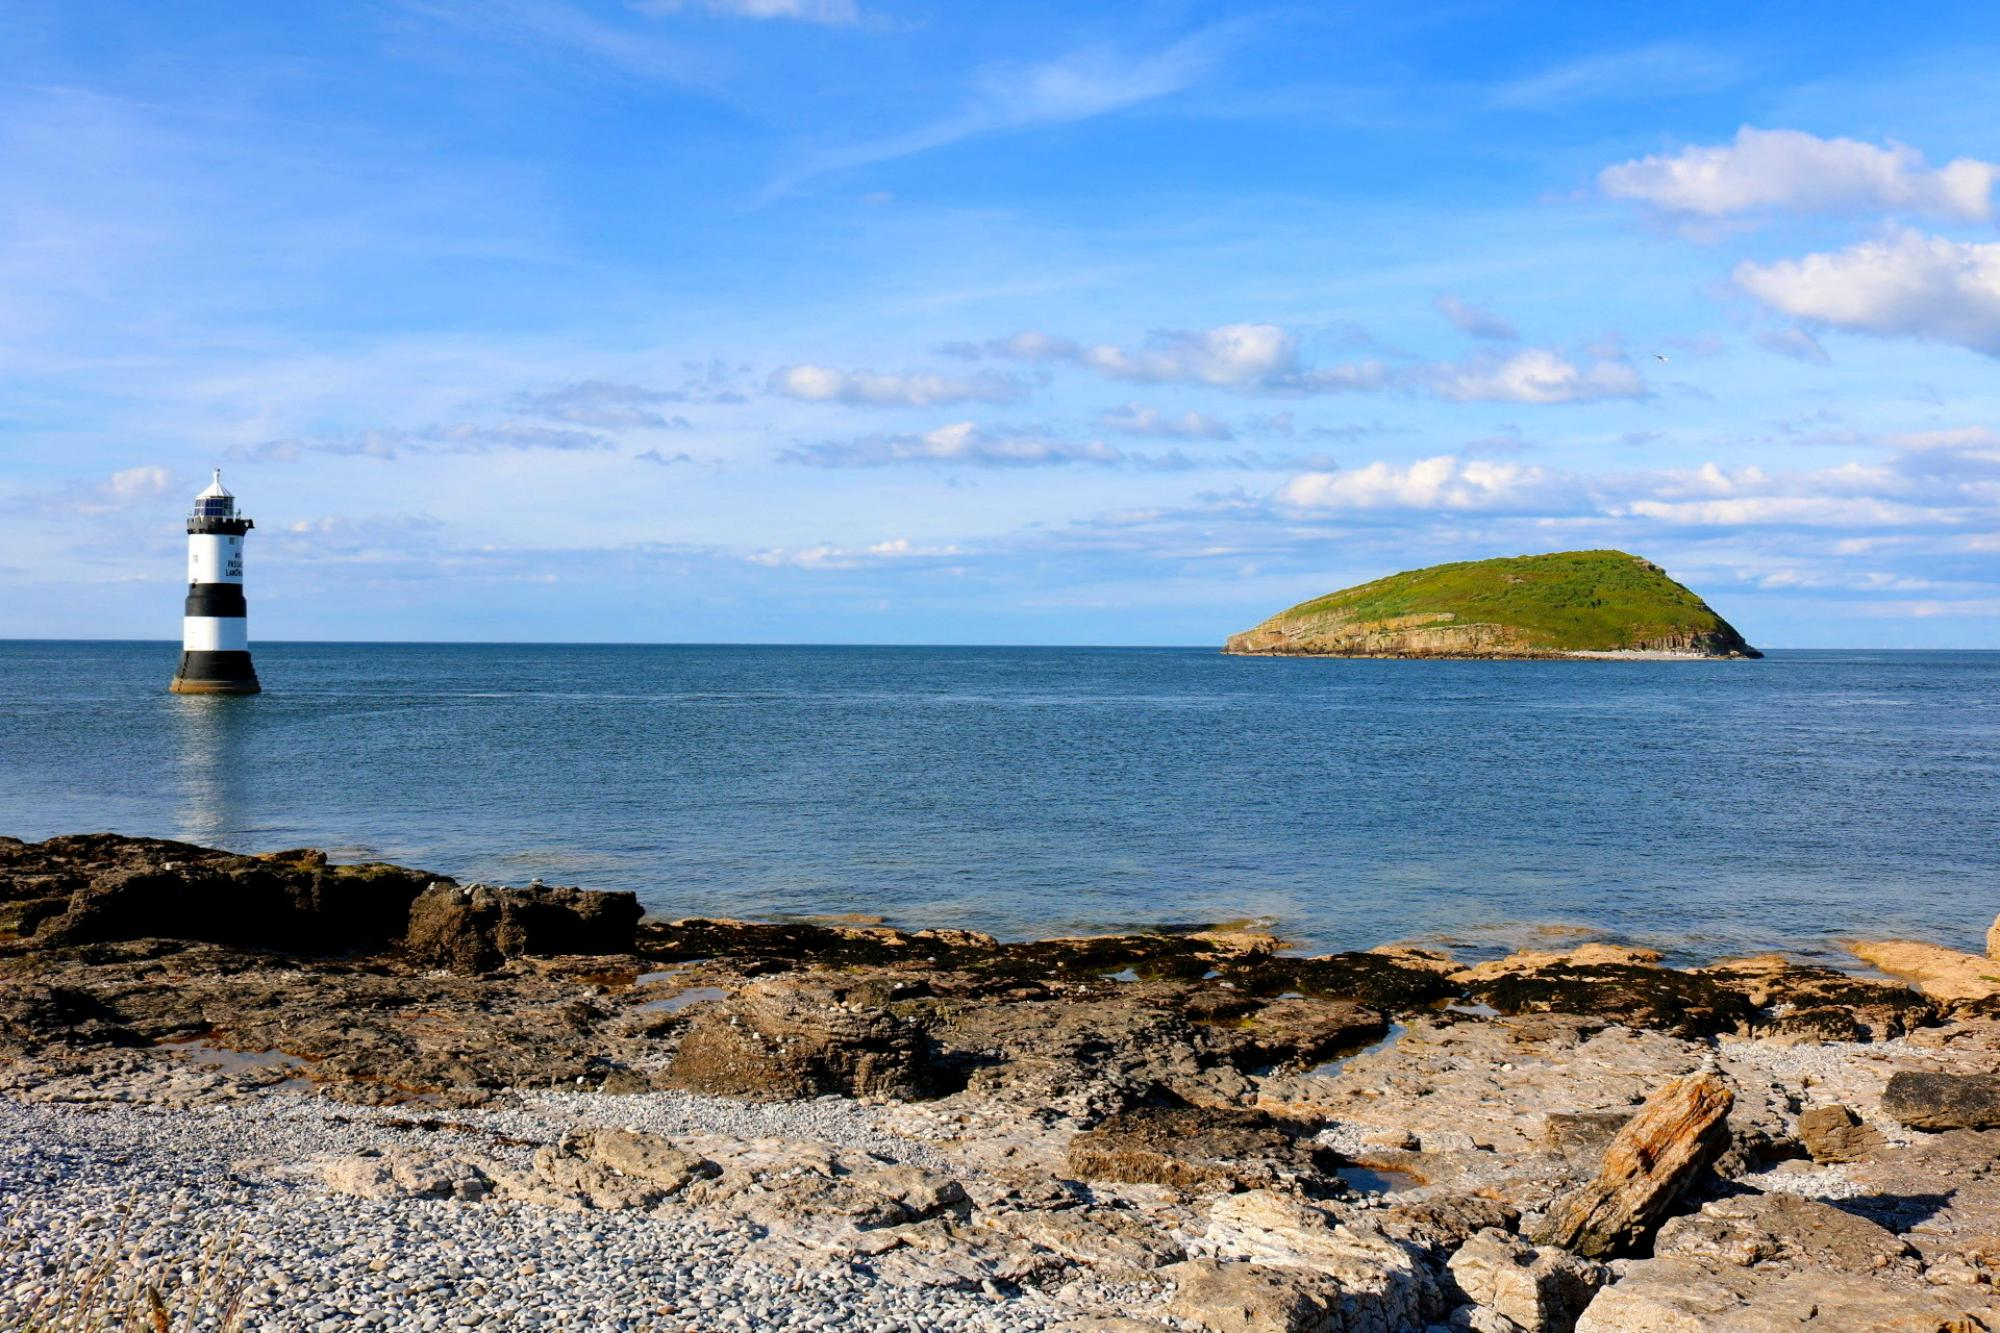 Campsites in Anglesey | Camping on the Isle of Anglesey, Wales